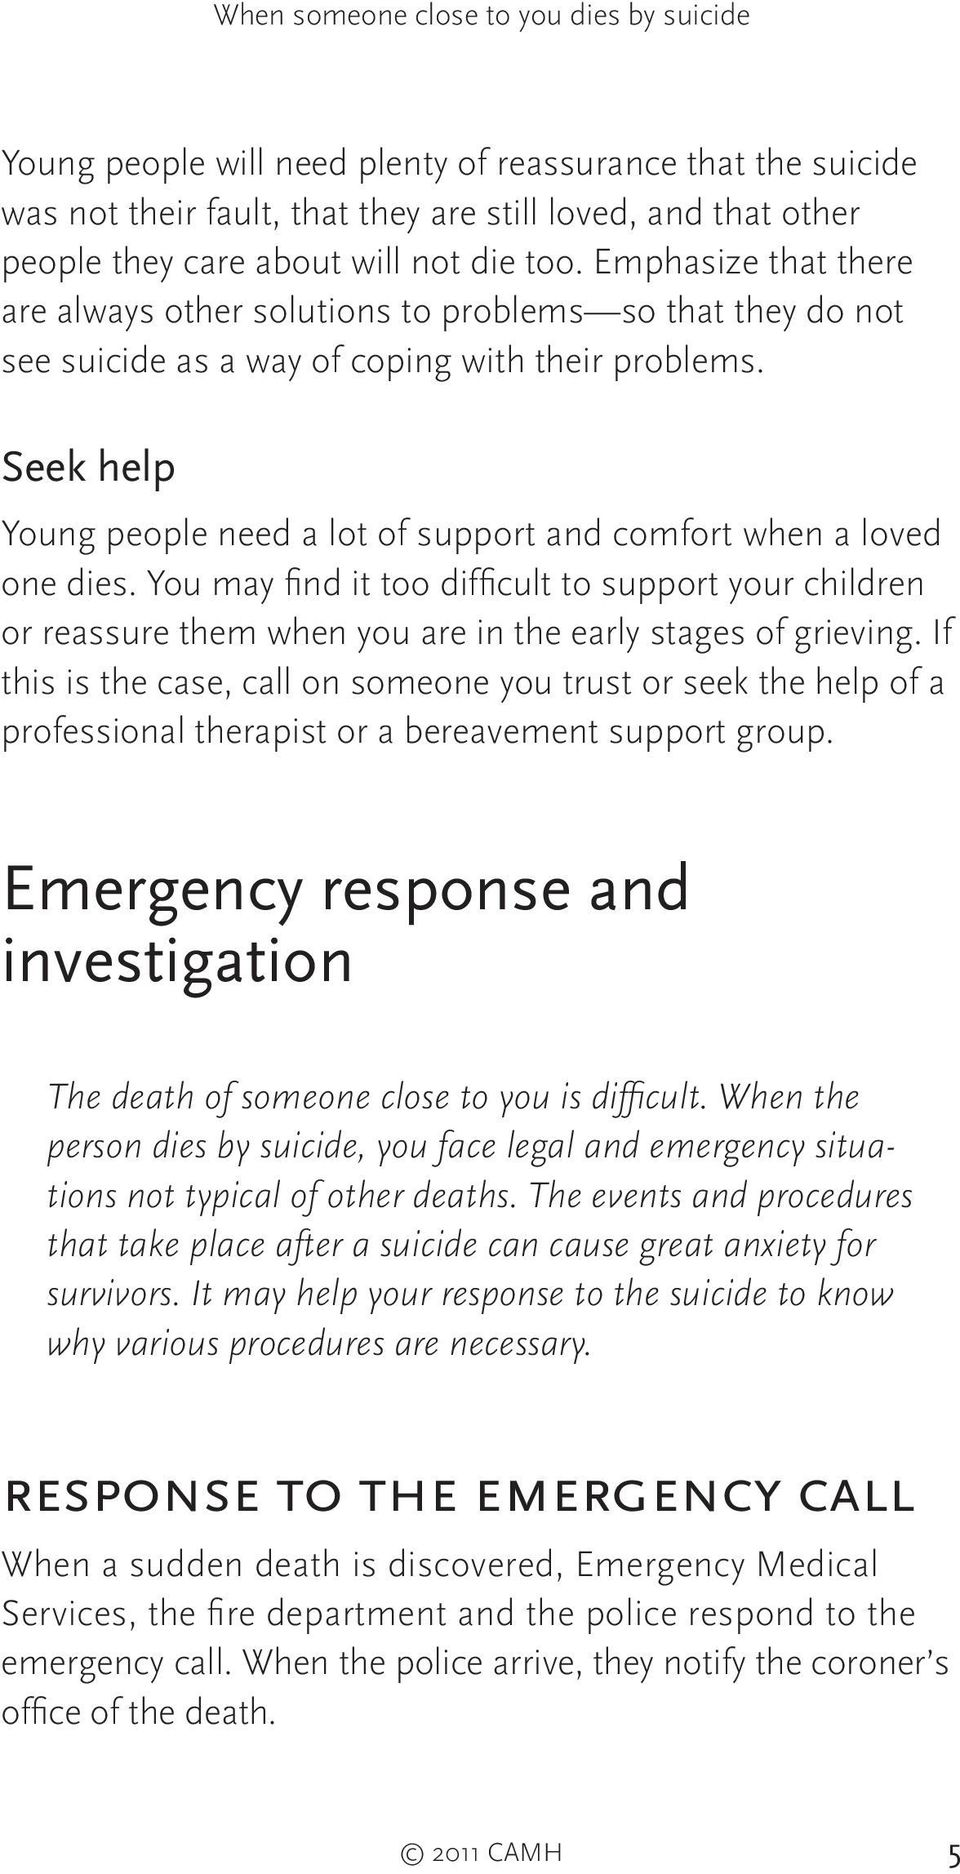 Seek help Young people need a lot of support and comfort when a loved one dies. You may find it too difficult to support your children or reassure them when you are in the early stages of grieving.